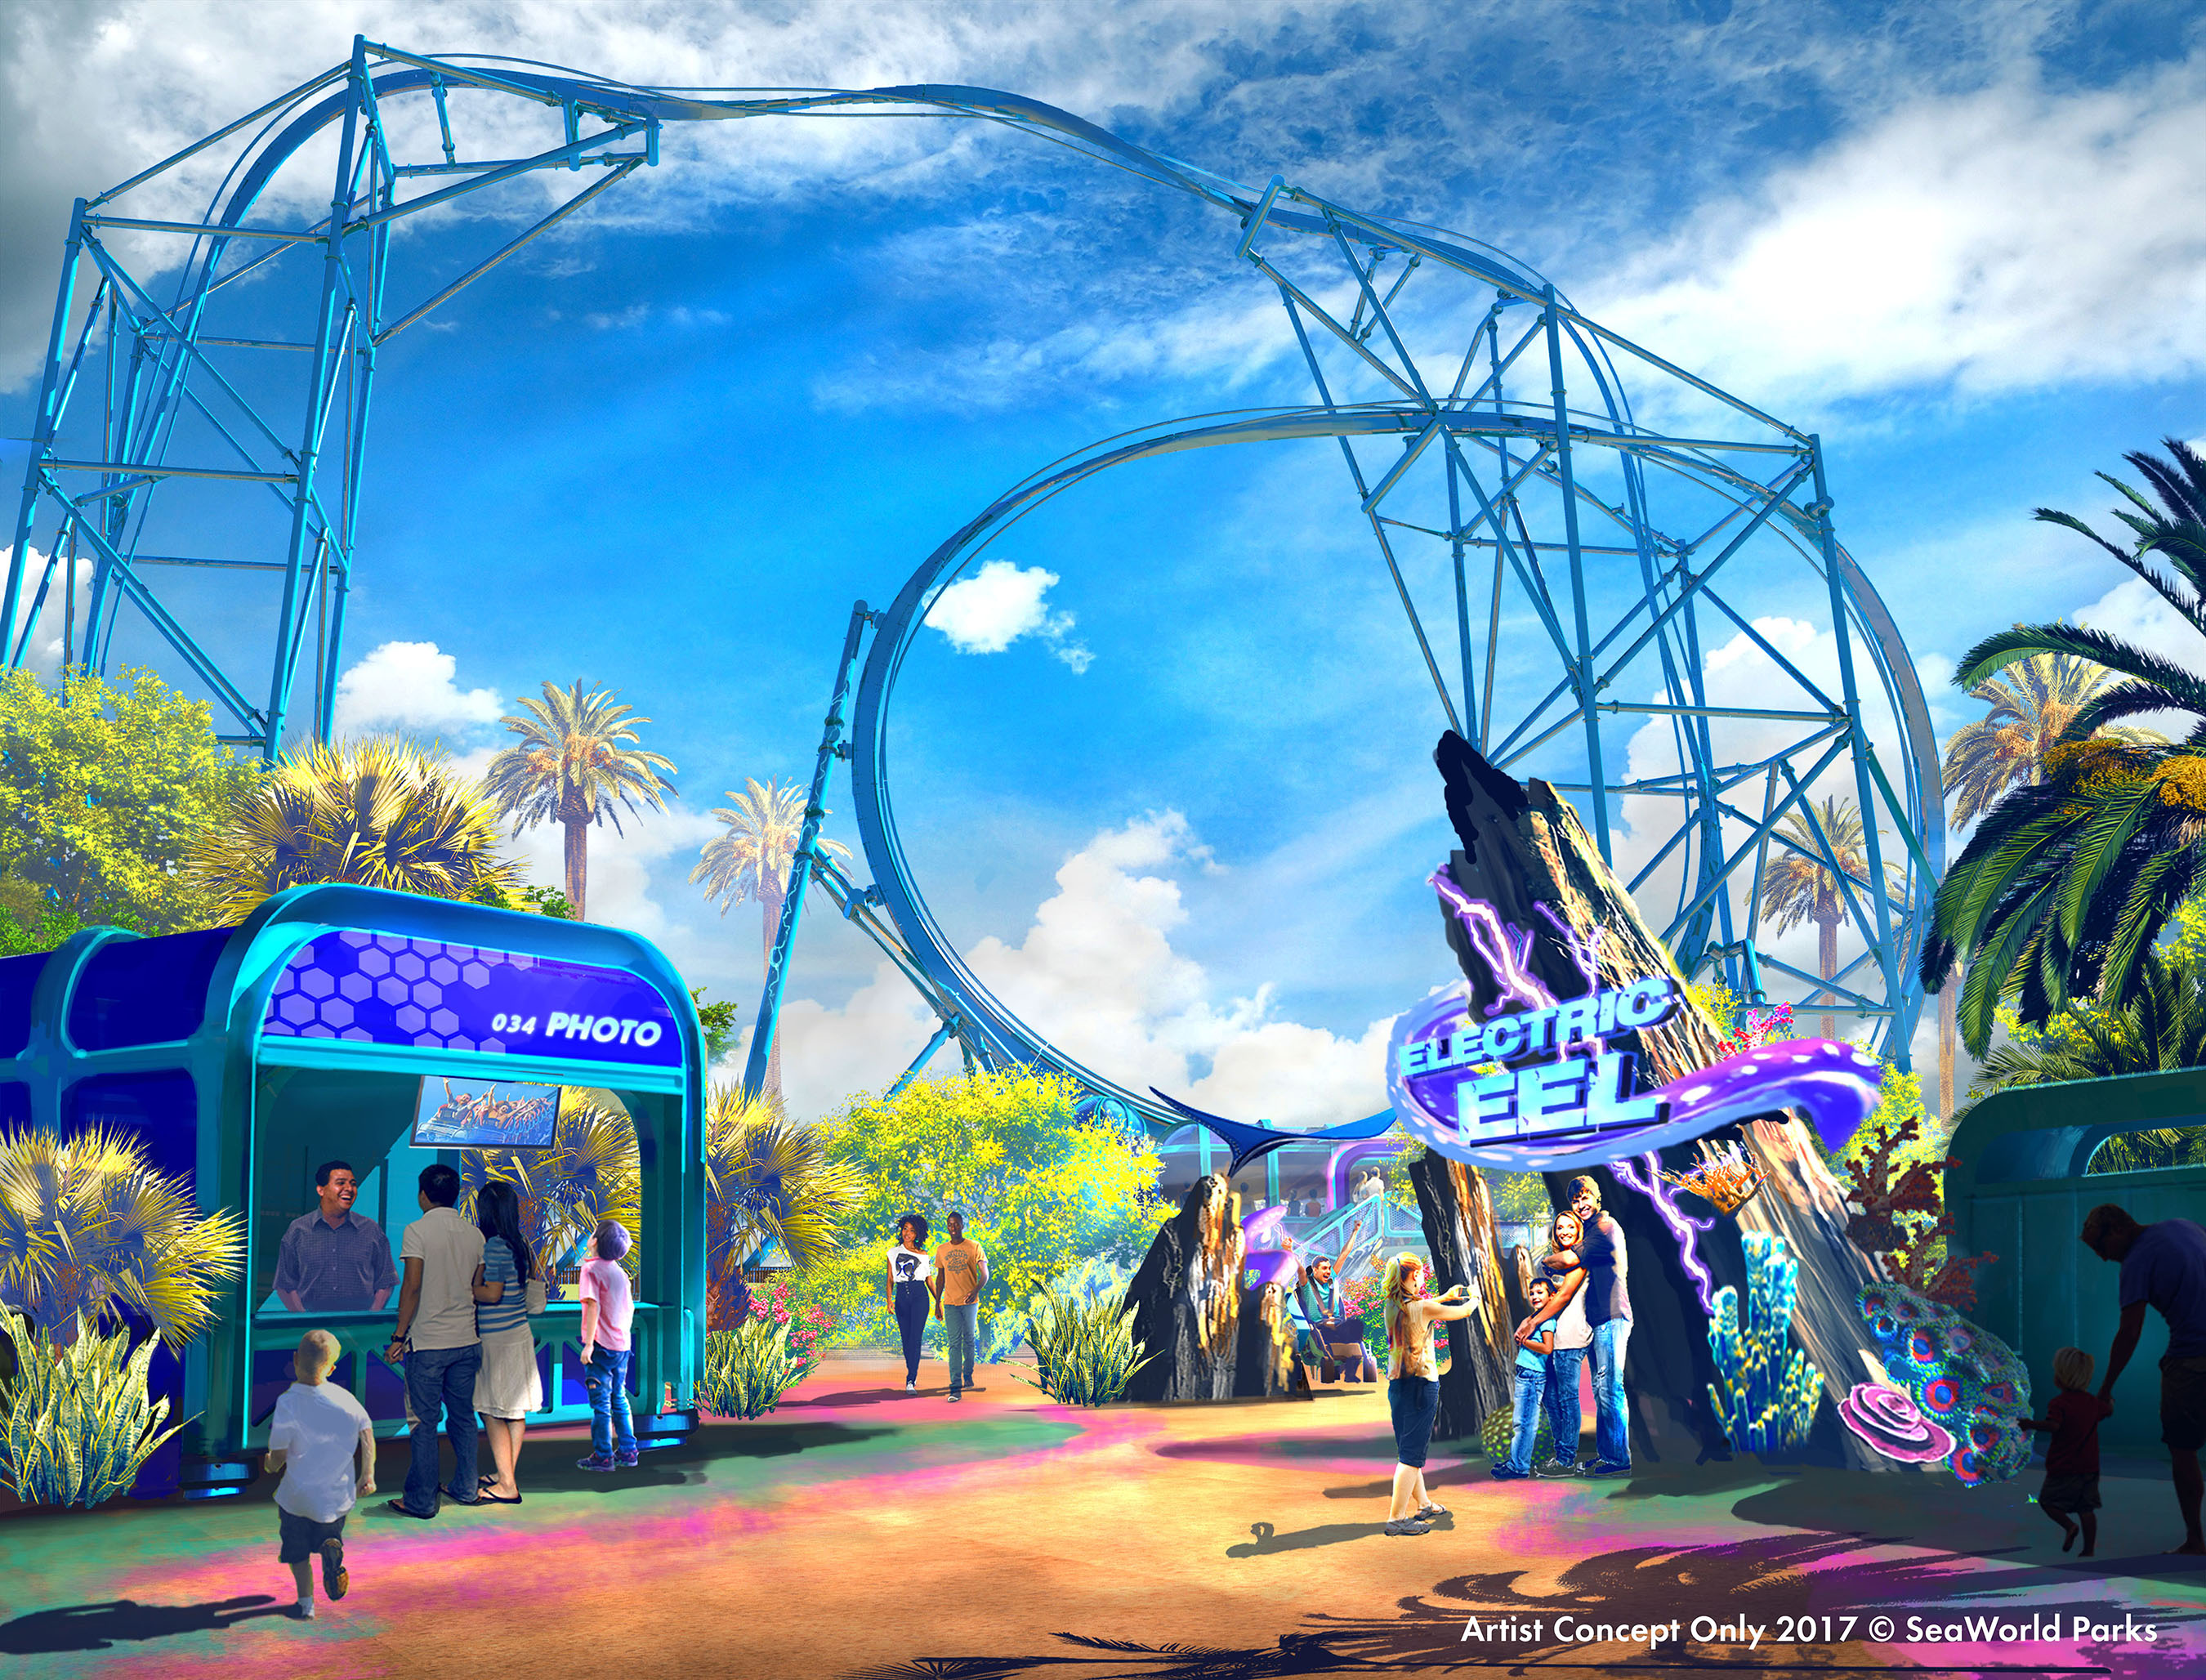 New Seaworld San Diego Coaster Set To Open In 2018 San Diego Business Journal